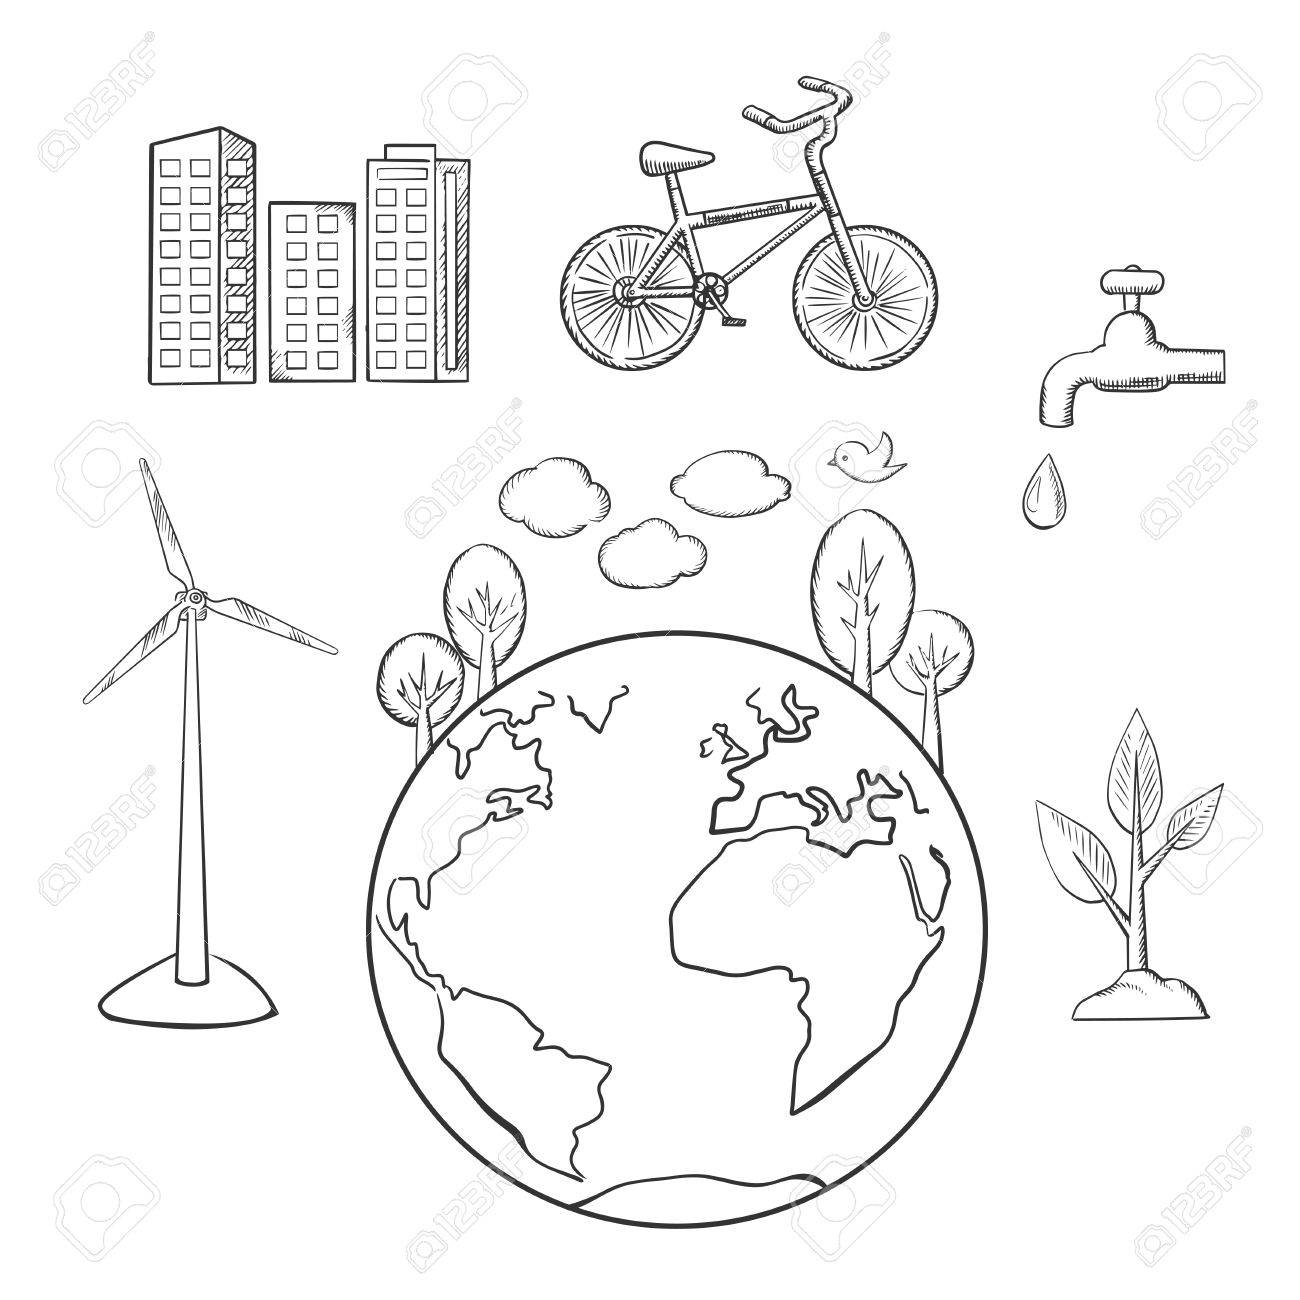 Eco friendly city green energy and natural resources protection eco friendly city green energy and natural resources protection sketched icons environment and ecology buycottarizona